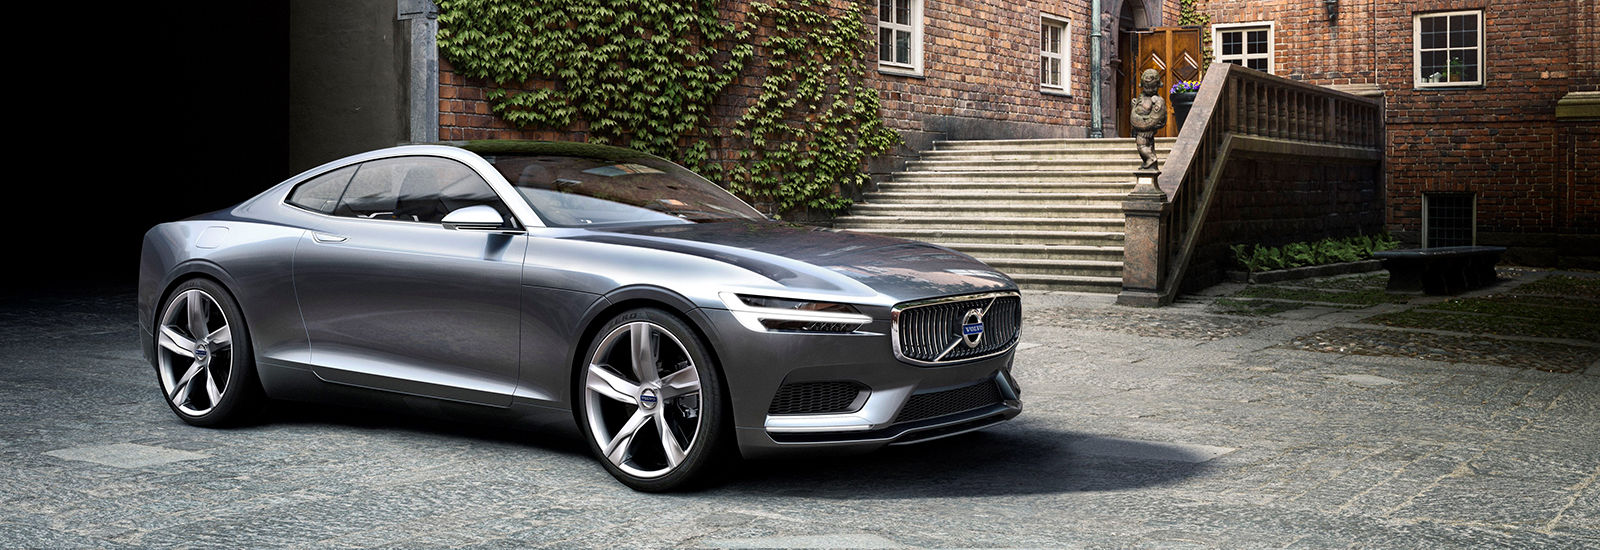 Volvo S90 Coupe C90 Price Specs Release Date Carwow